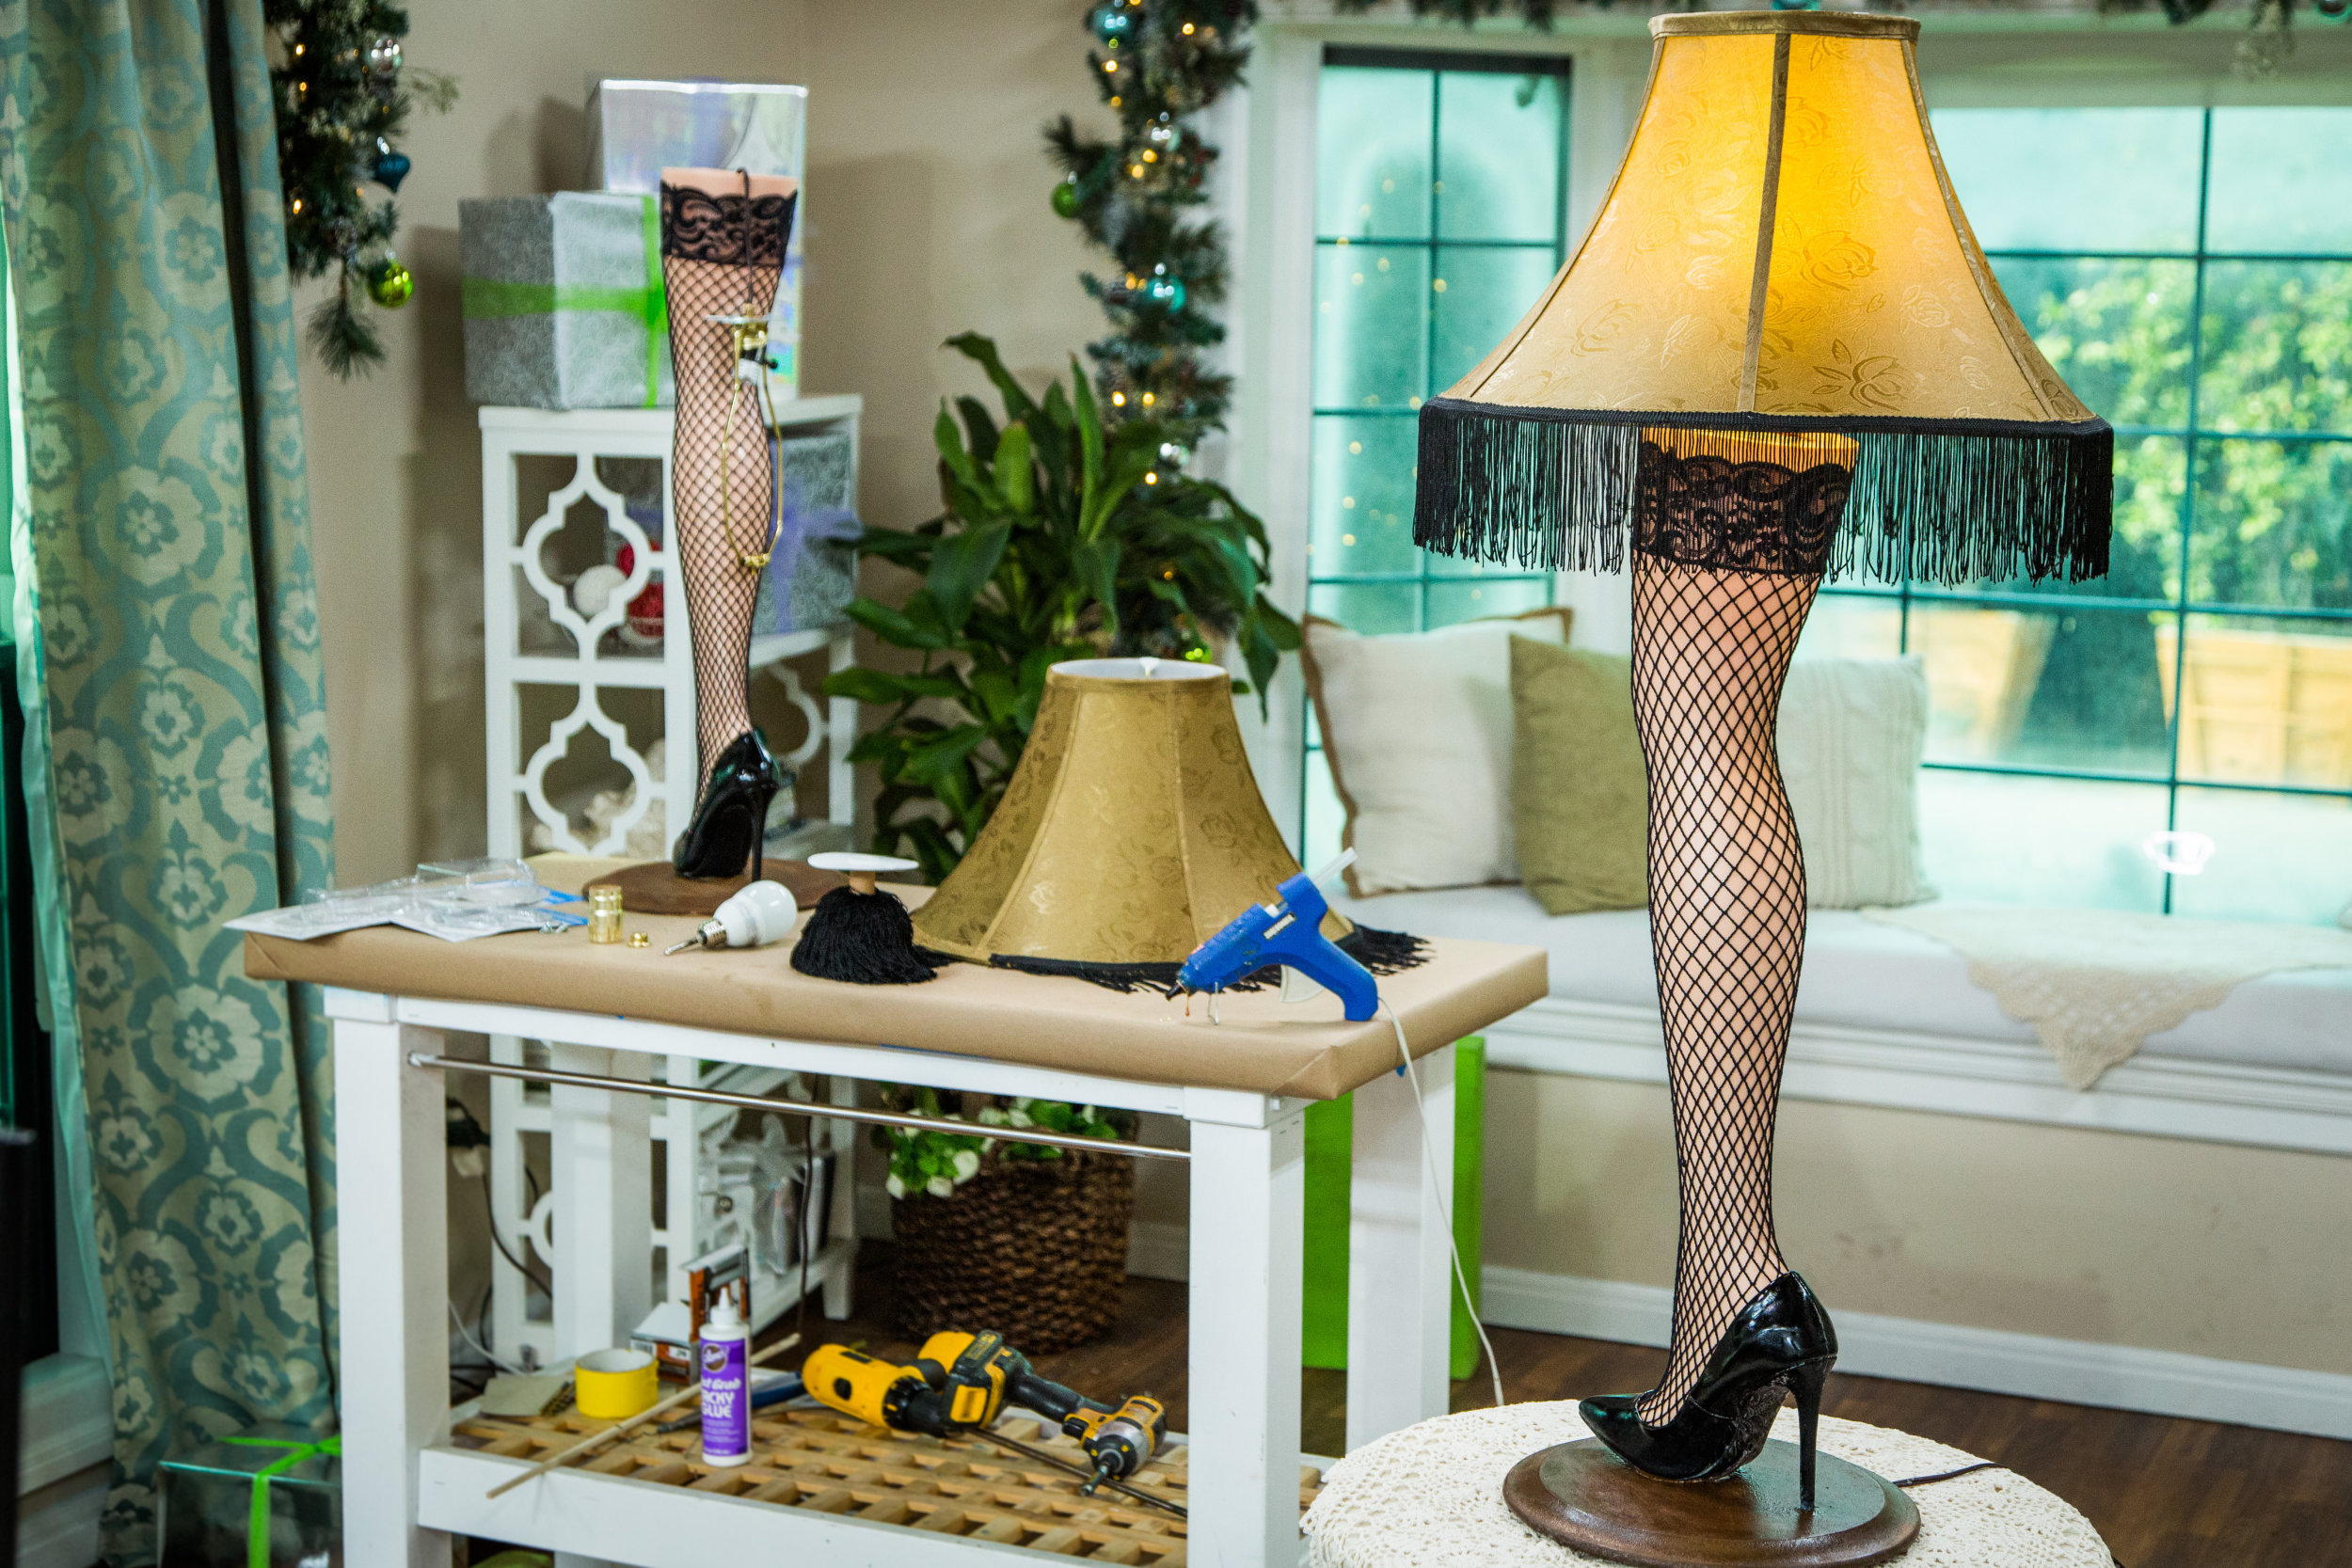 How To Diy Leg Lamp Home Amp Family Hallmark Channel